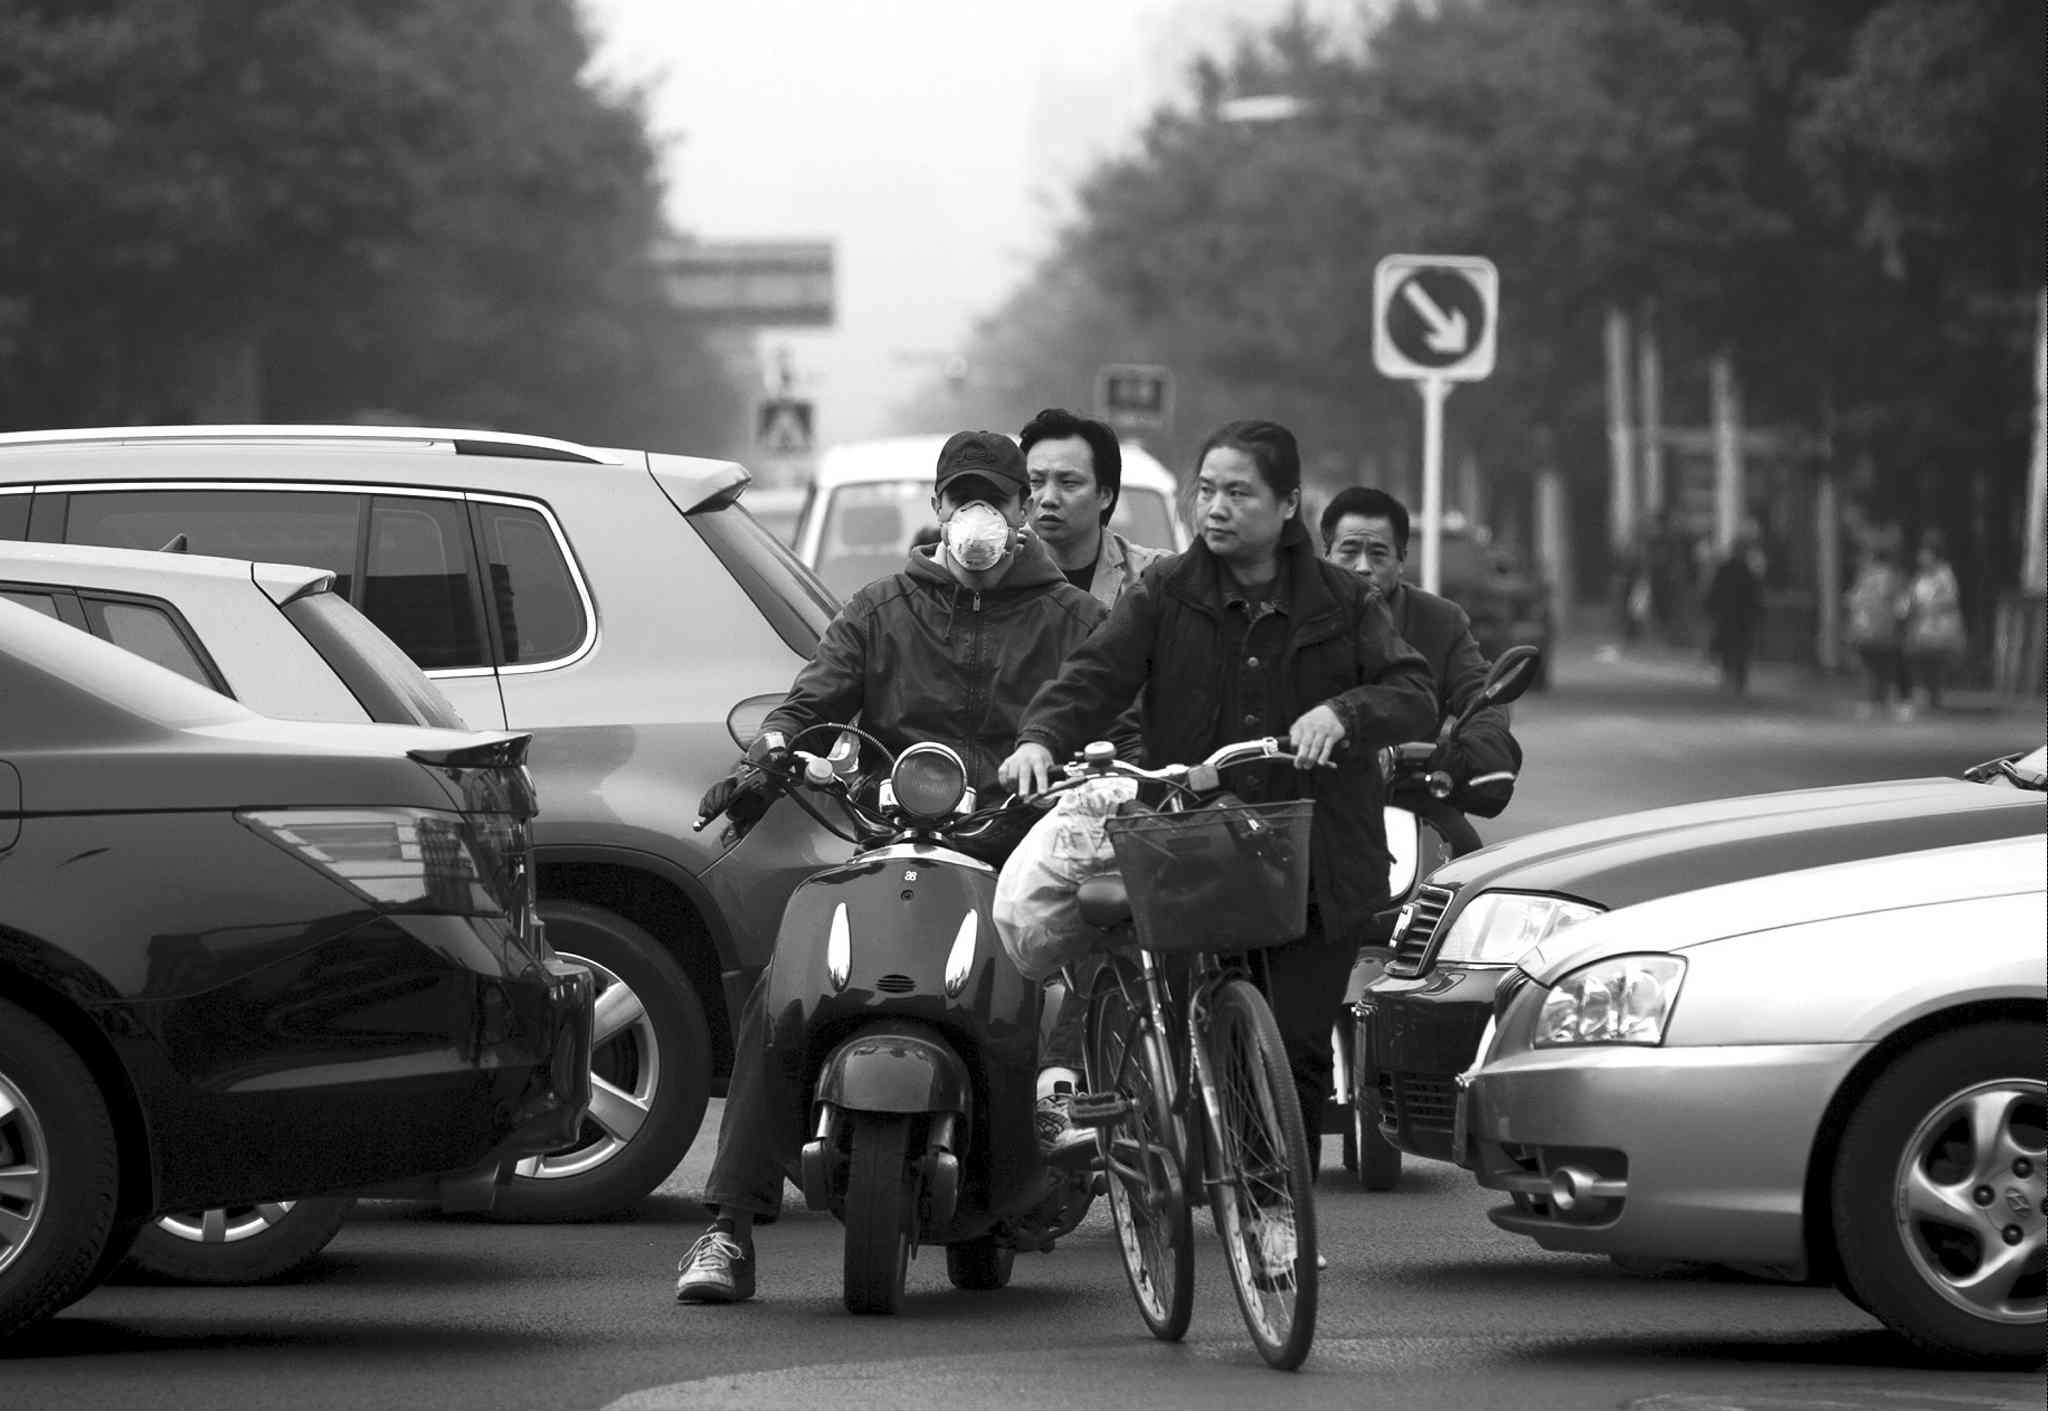 Bicyclists jostle with motorists on a polluted day in Beijing on Oct. 22.